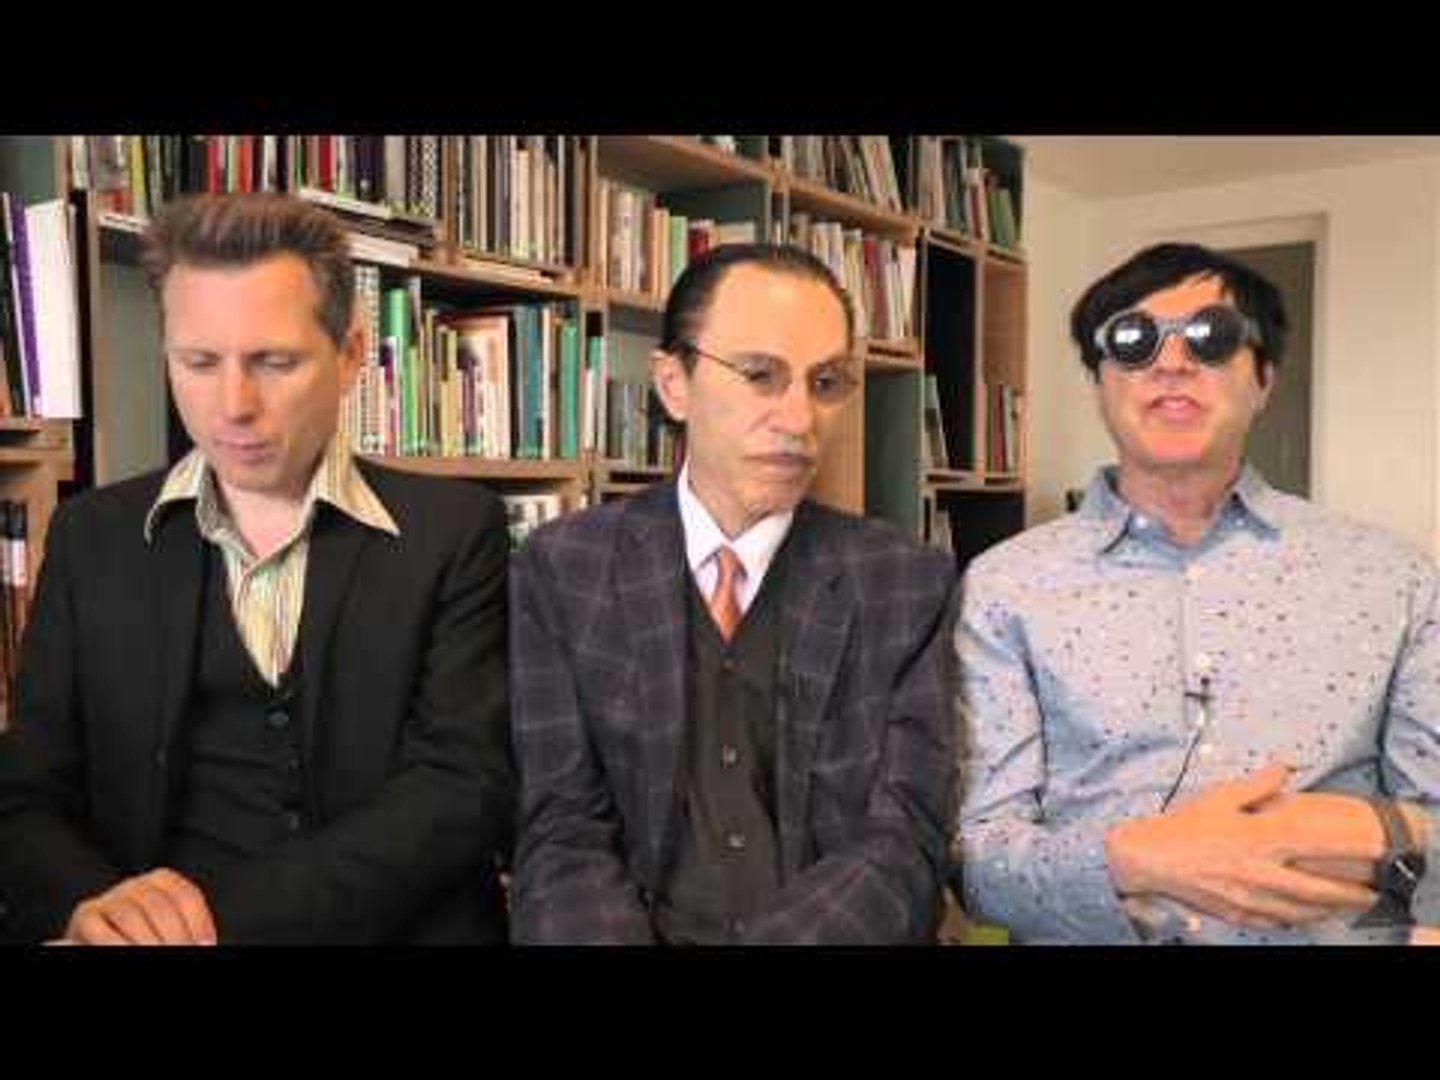 Franz Ferdinand Sparks interview - Alex, Ron & Russel (part 2)